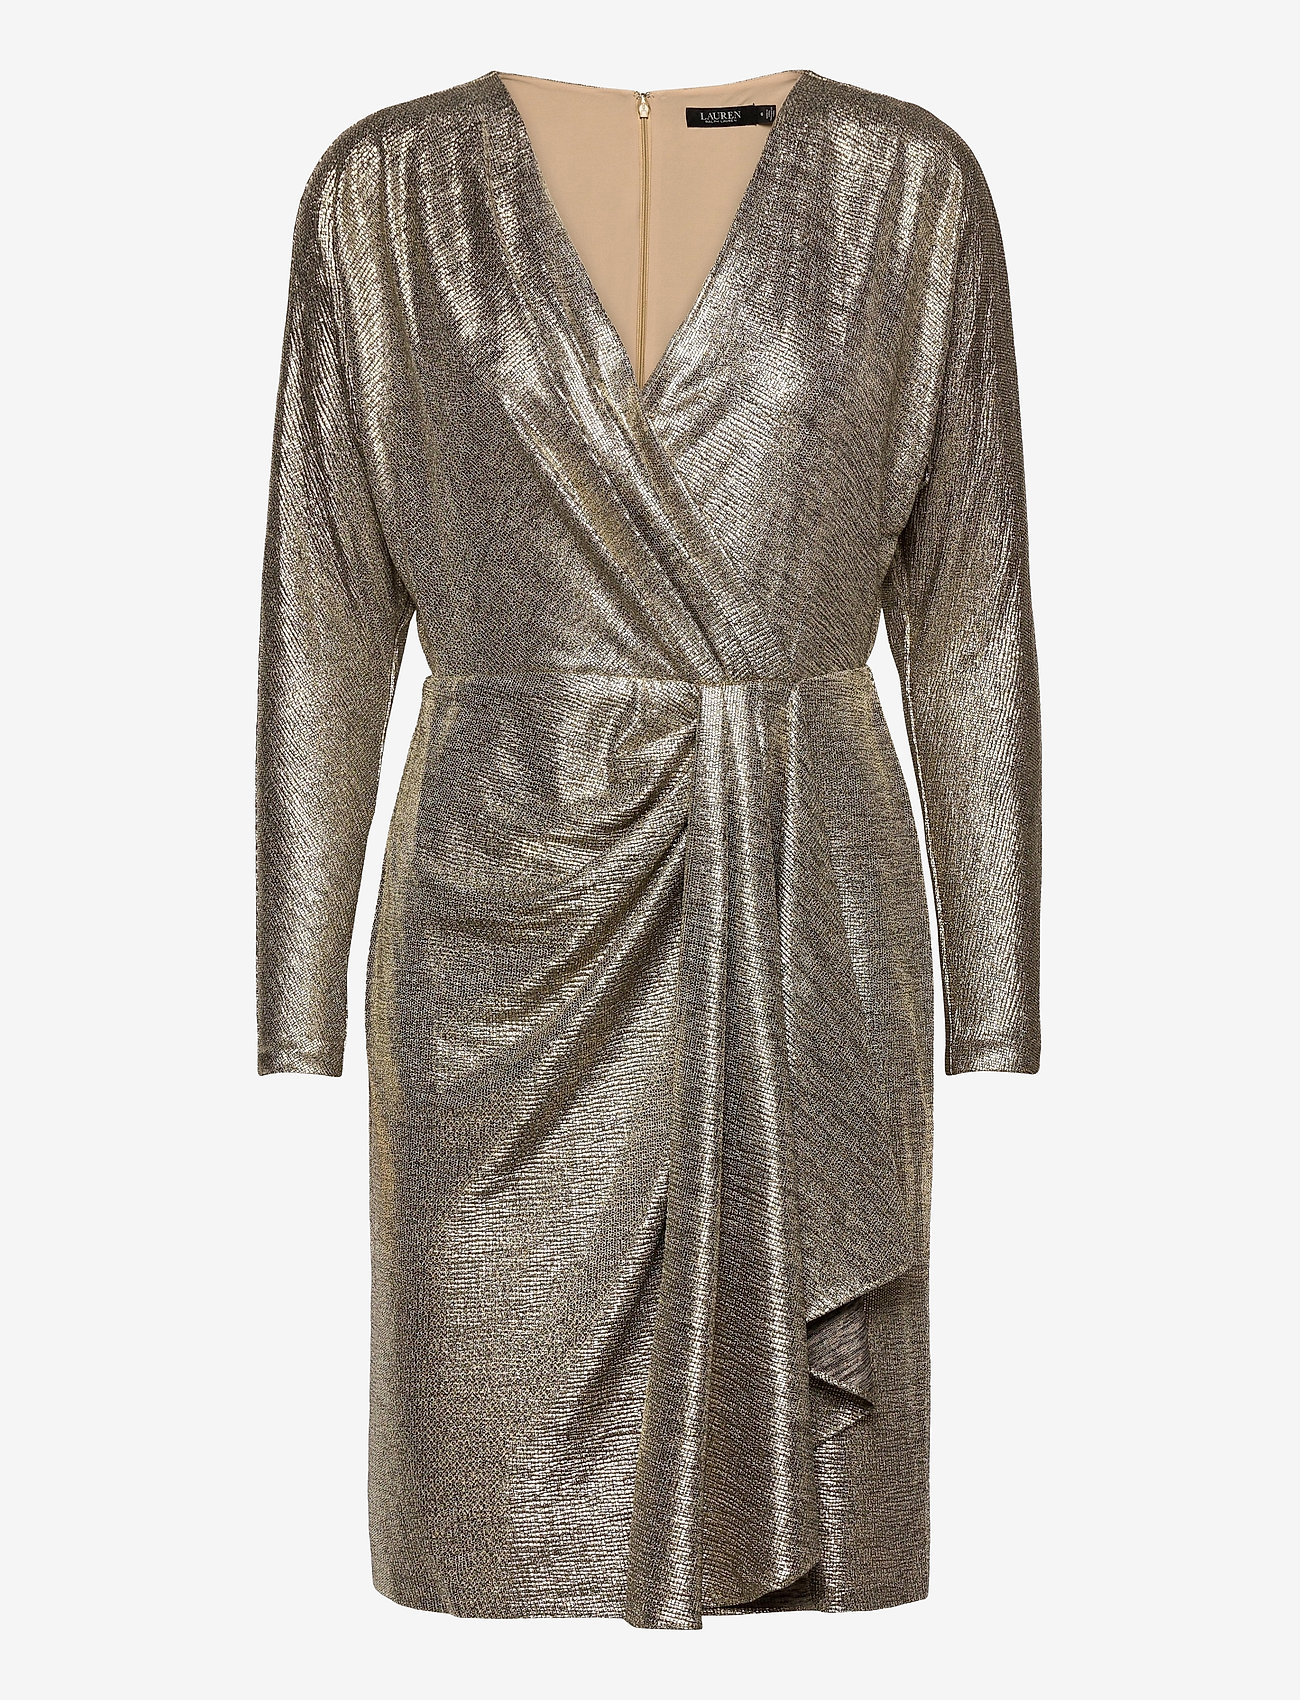 Lauren Ralph Lauren - Metallic Stretch Knit Cocktail Dress - cocktailkjoler - beige/gold - 0